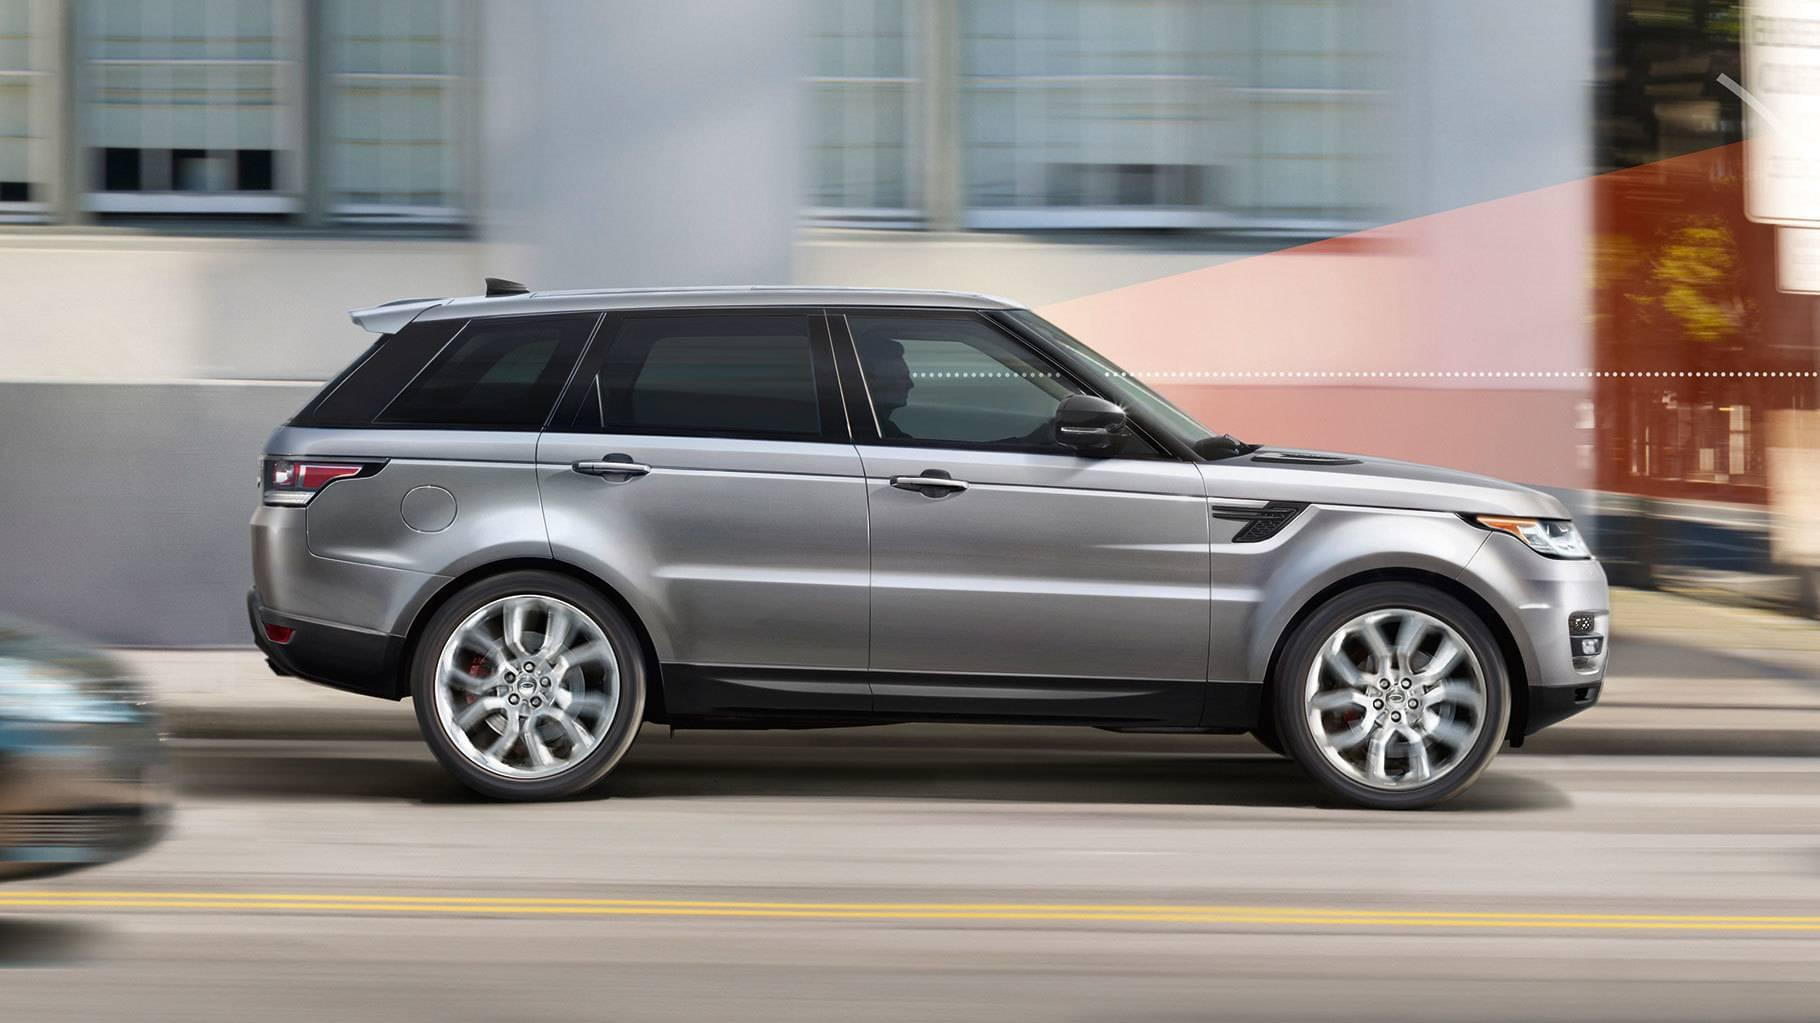 2017 Land Rover Range Rover Sport side view